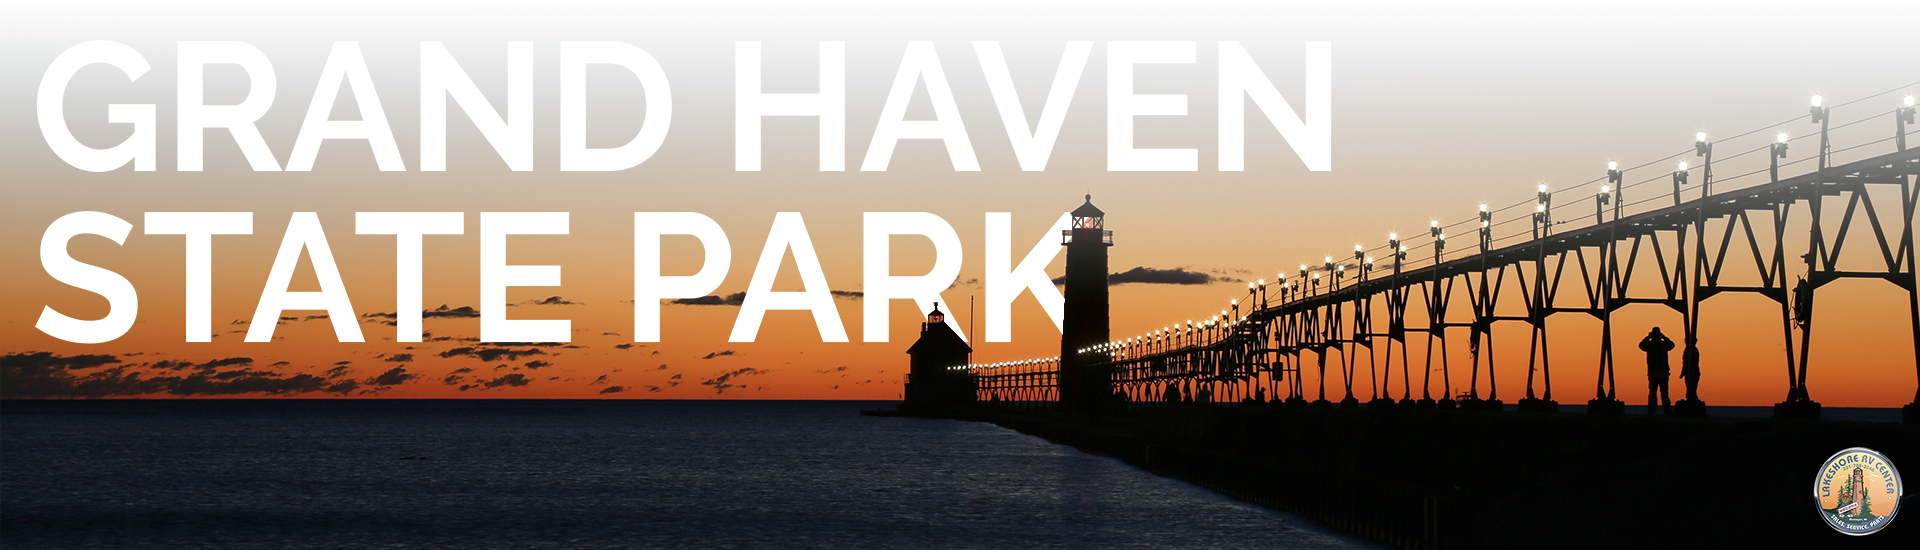 Grand Haven State Park - Awesome Michigan RV Destination